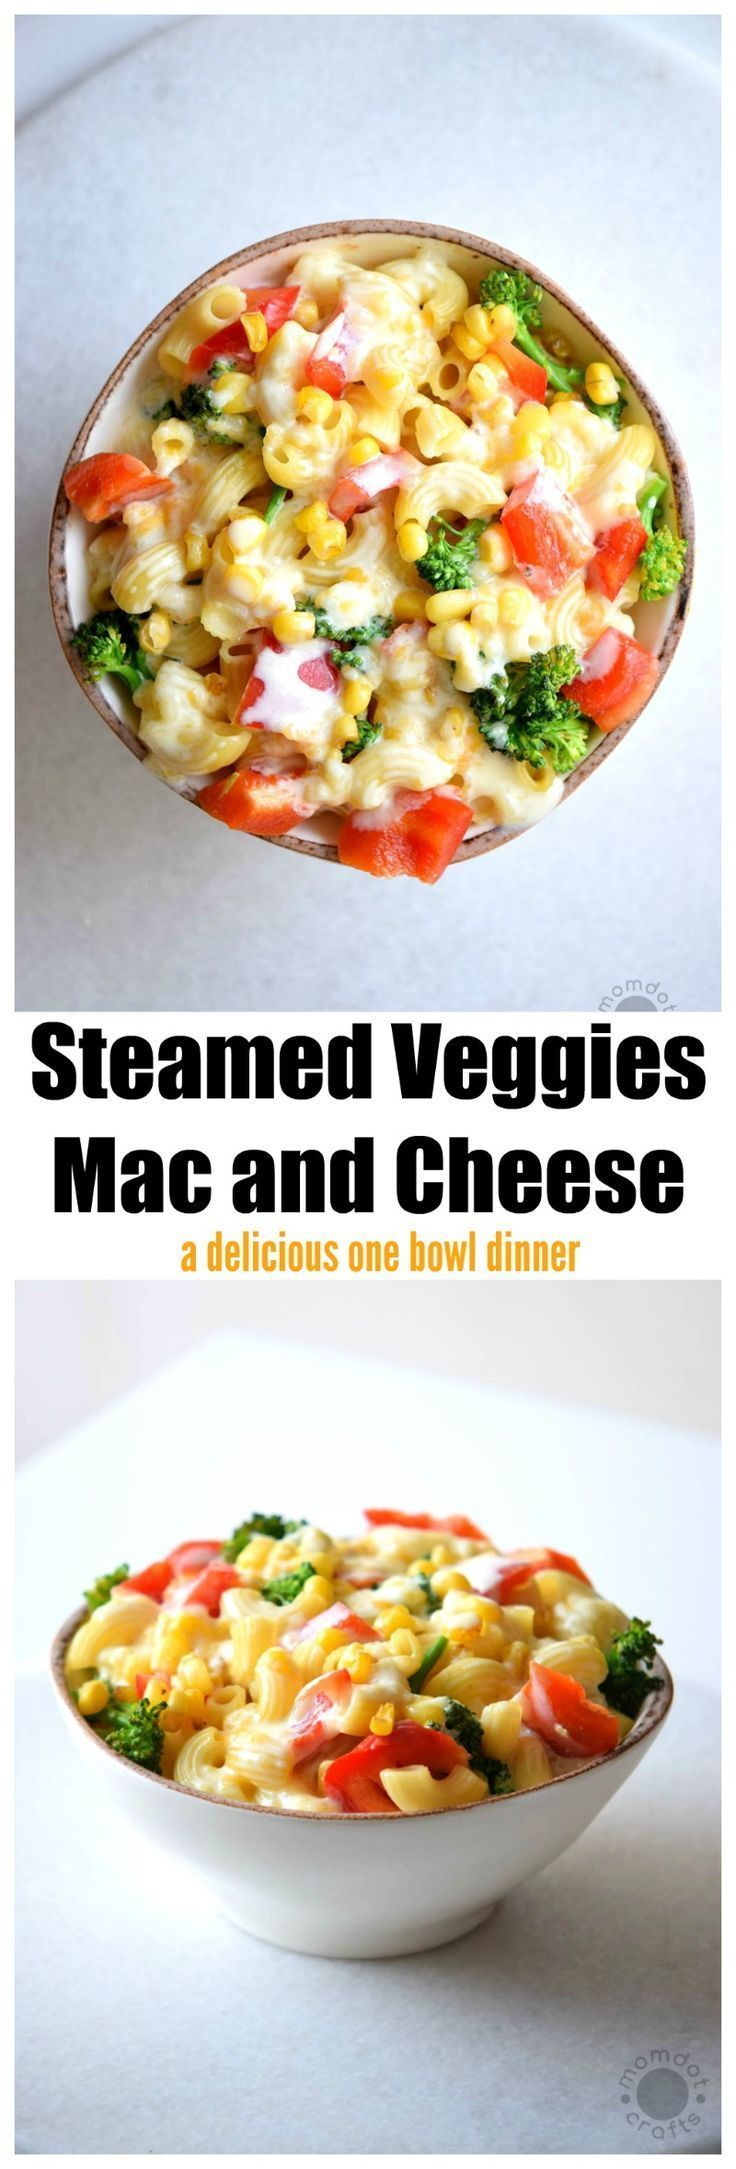 Steamed Veggies Mac and Cheese -- For an Italian version, add sun-dried tomatoes and parmesan cheese.